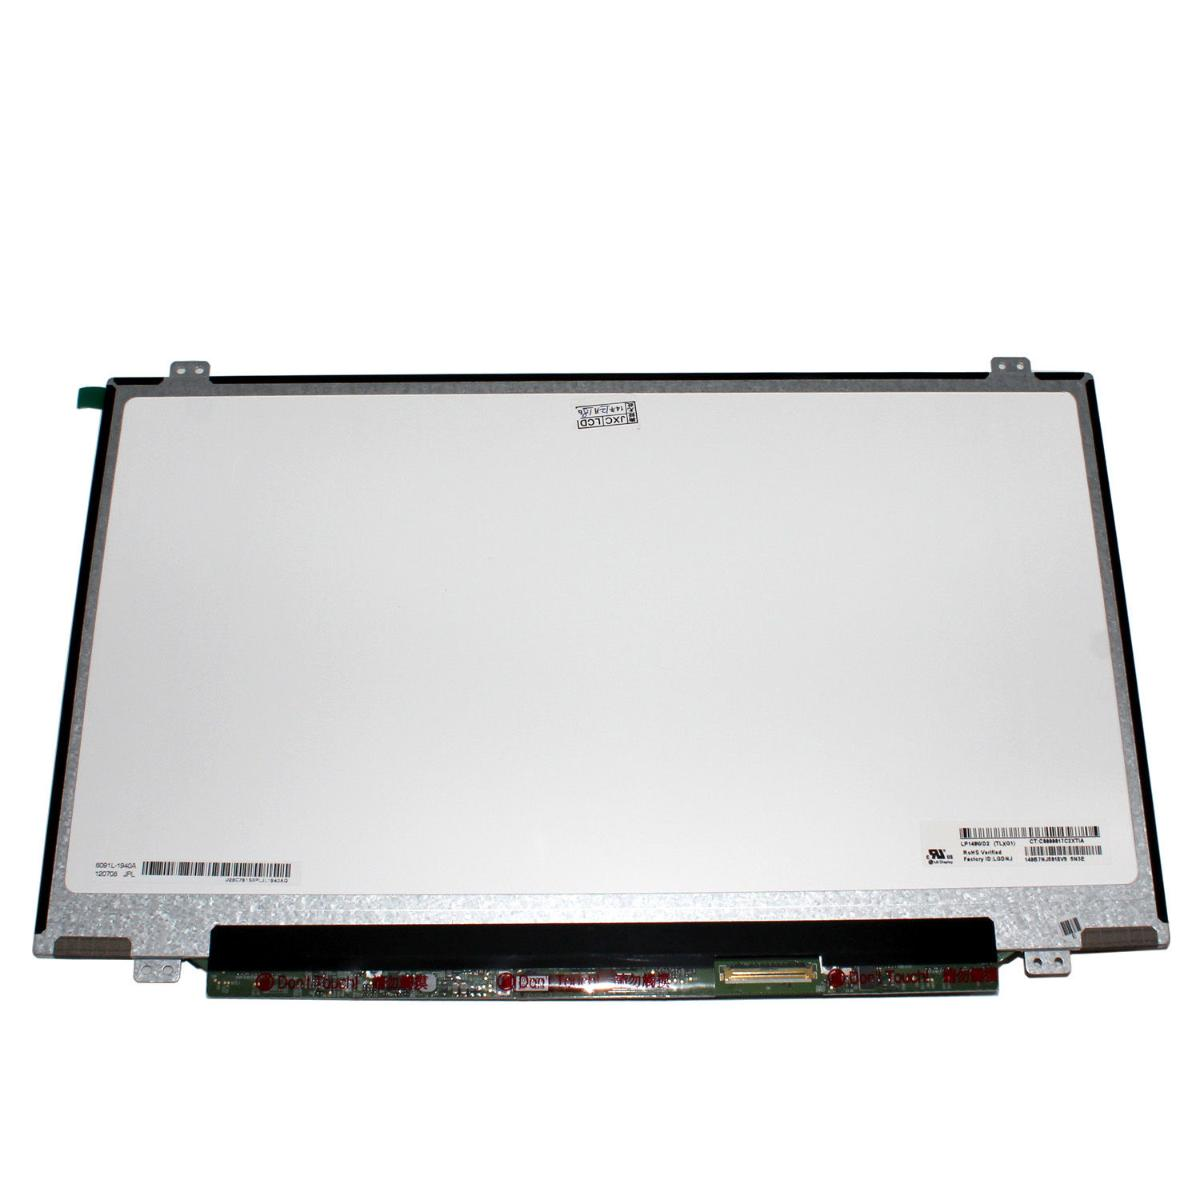 14.0 LED Screen for LG PHILIPS LP140WD2(TL)(G1) LCD LAPTOP LP140WD2-TLG1 n140fge-l32 (Kωδ. 2824)